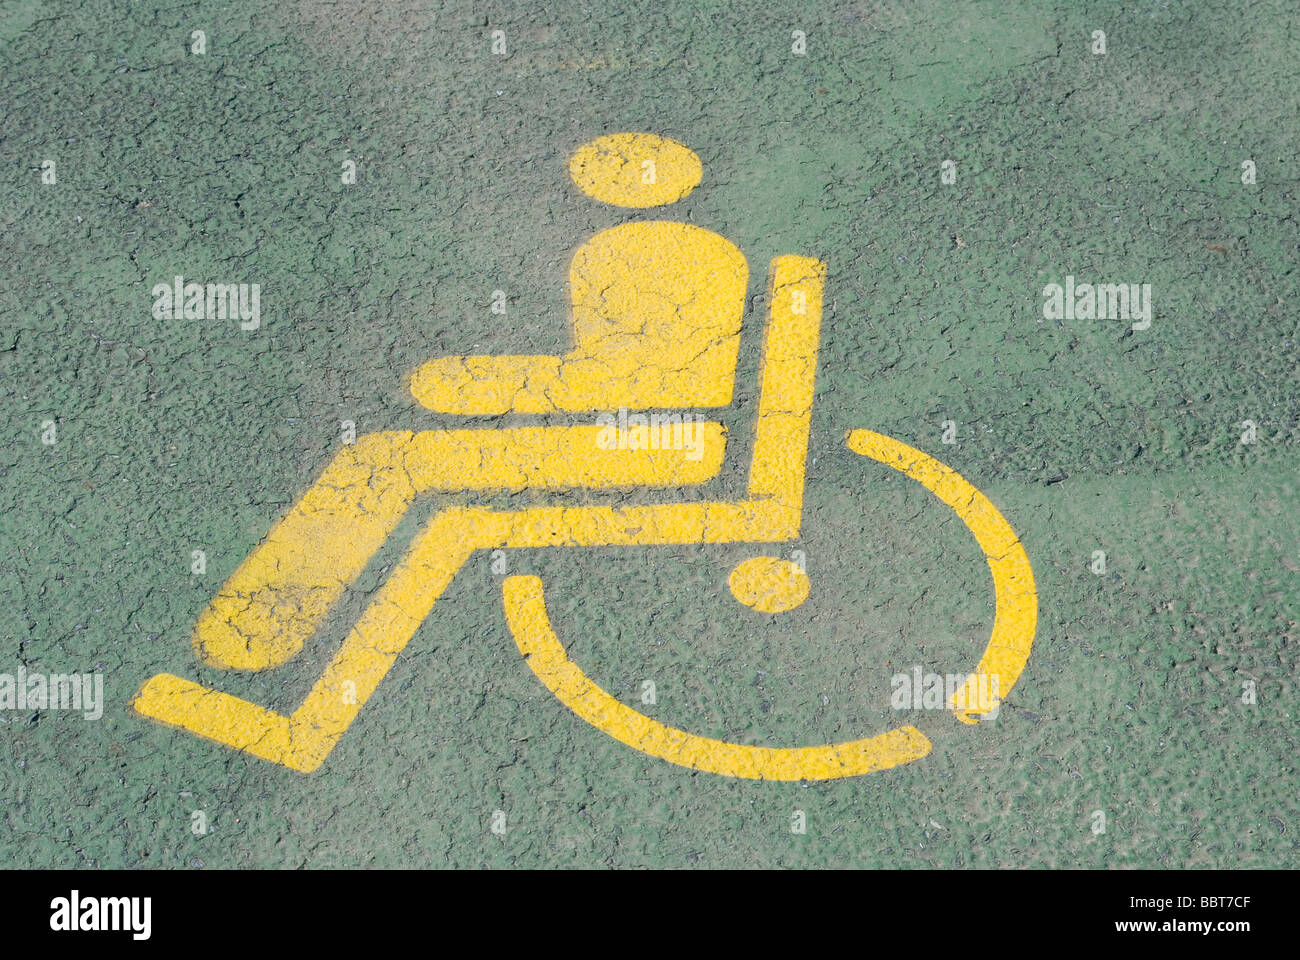 Painted yellow Handicap symbol on a parking space - Stock Image